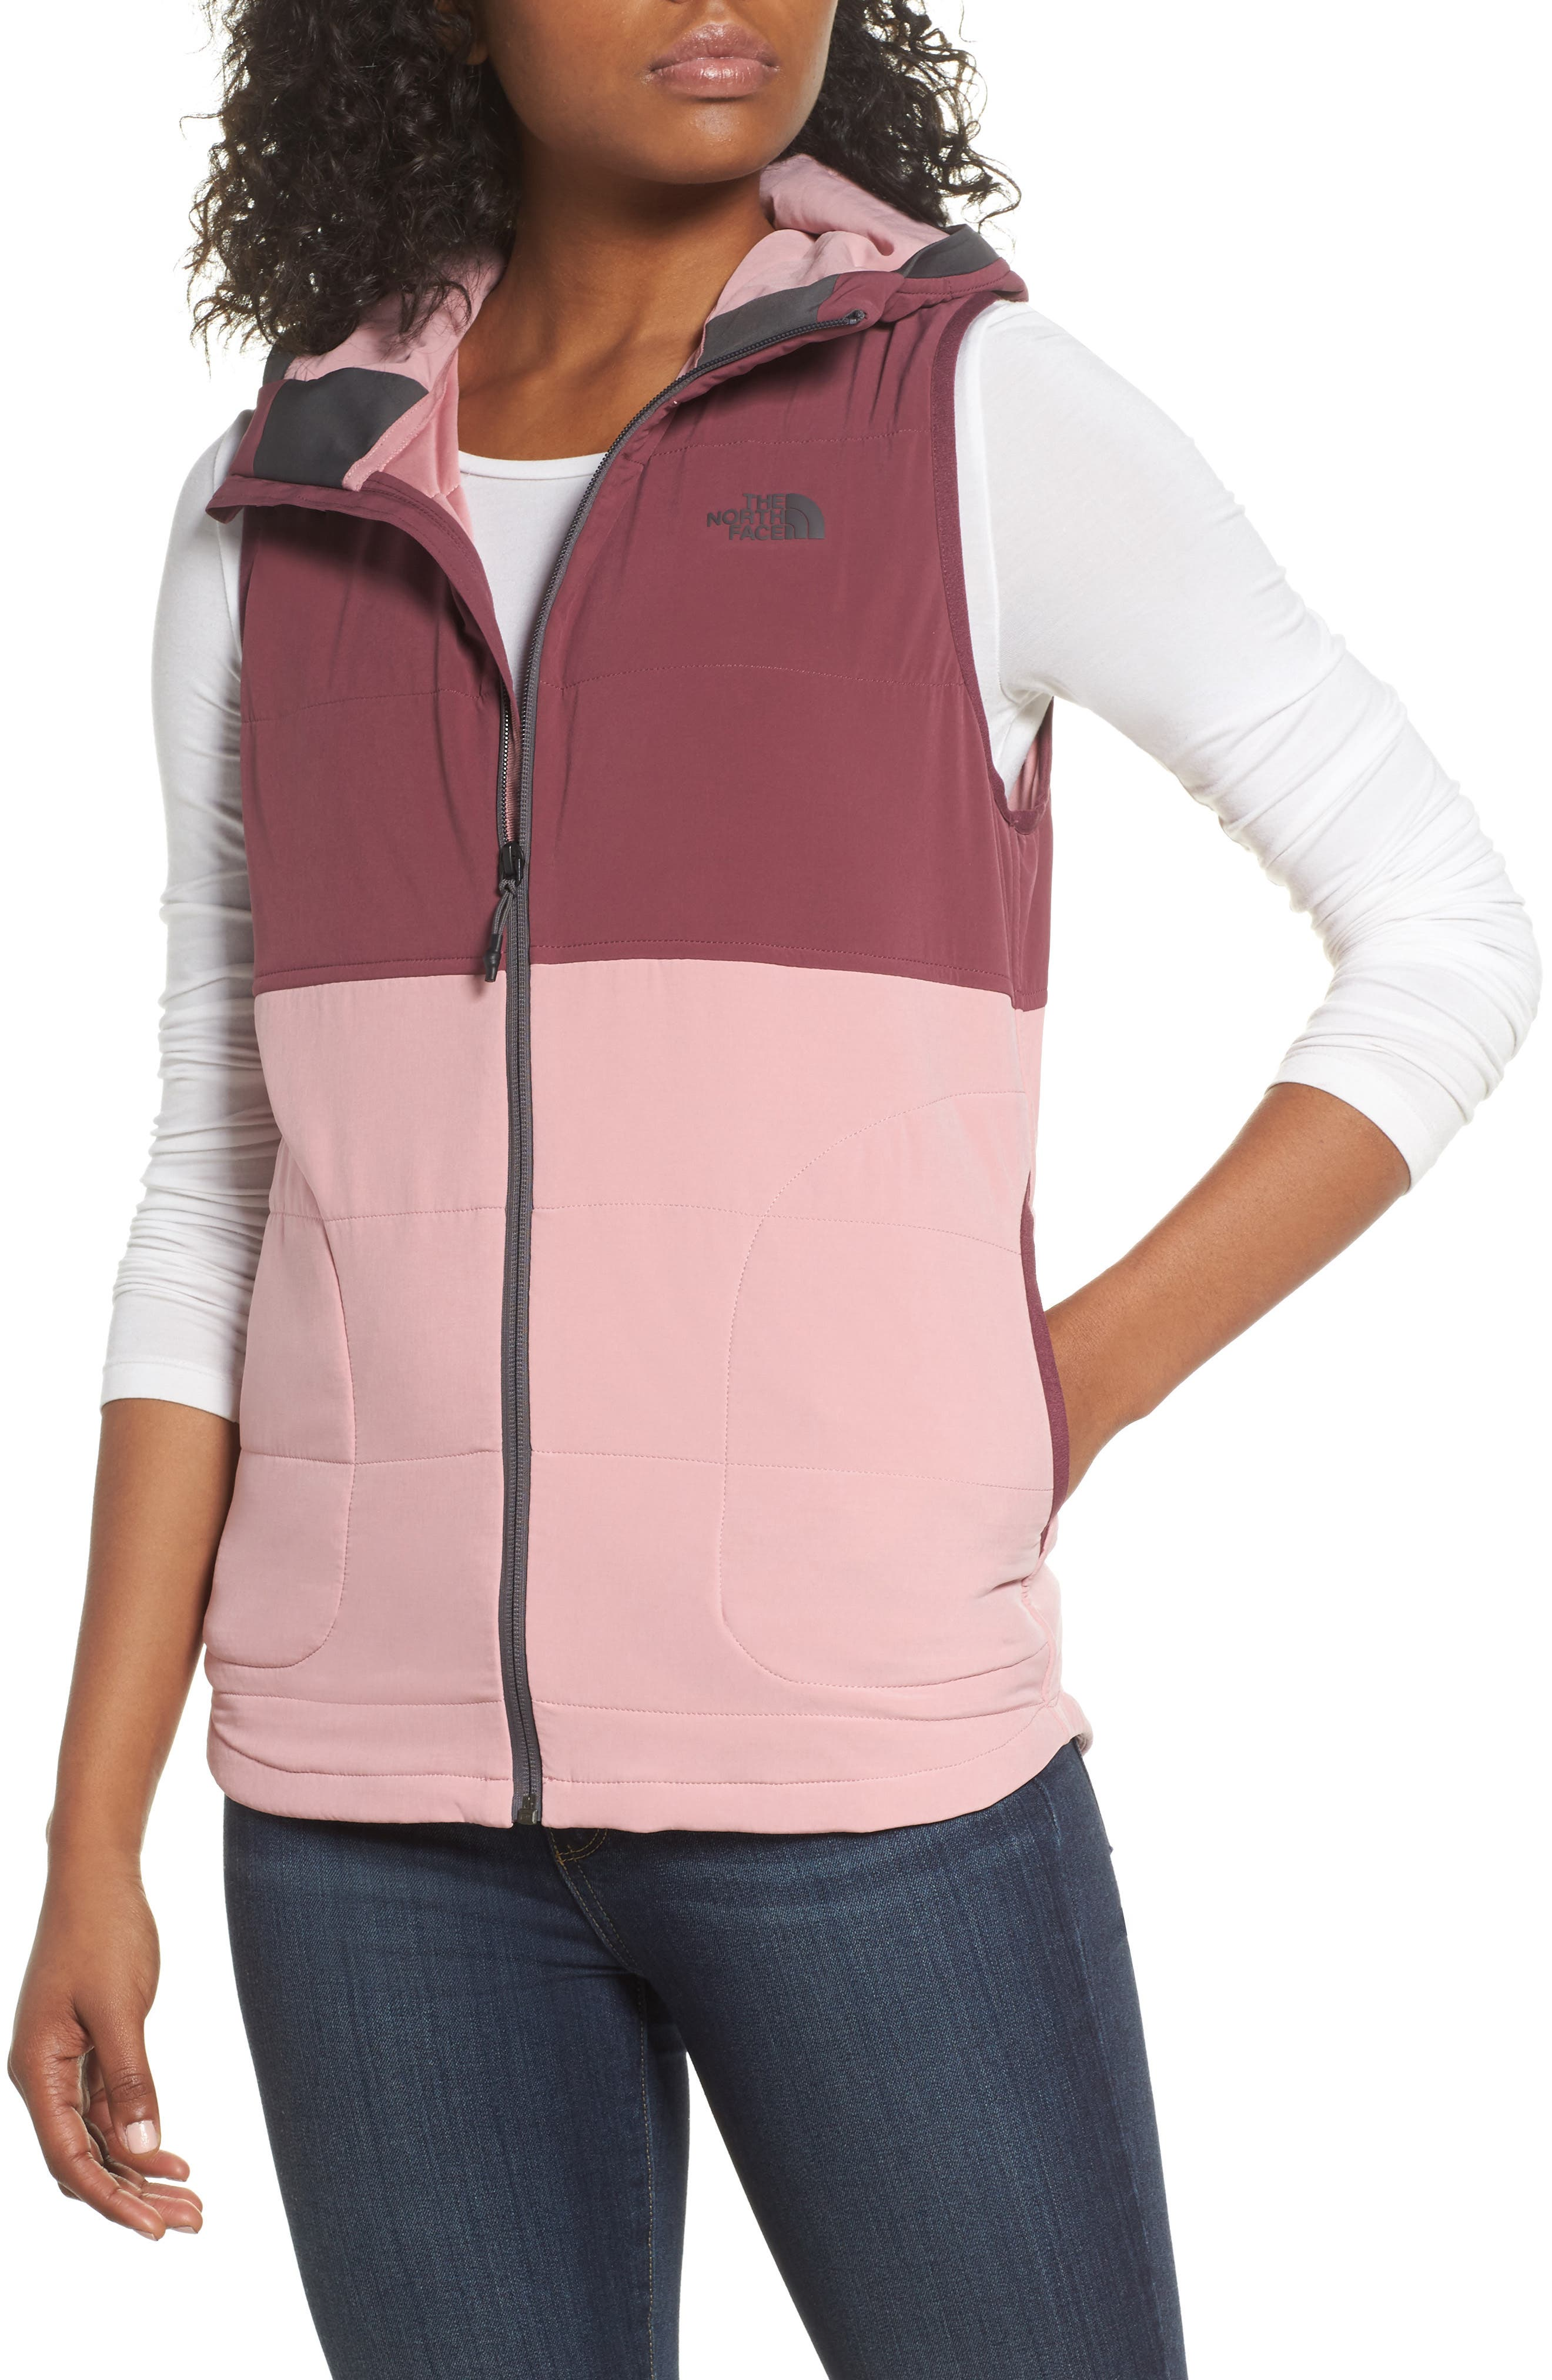 Mountain Sweatshirt Insulated Hooded Vest,                         Main,                         color, Foxglove Lavender/ Violets